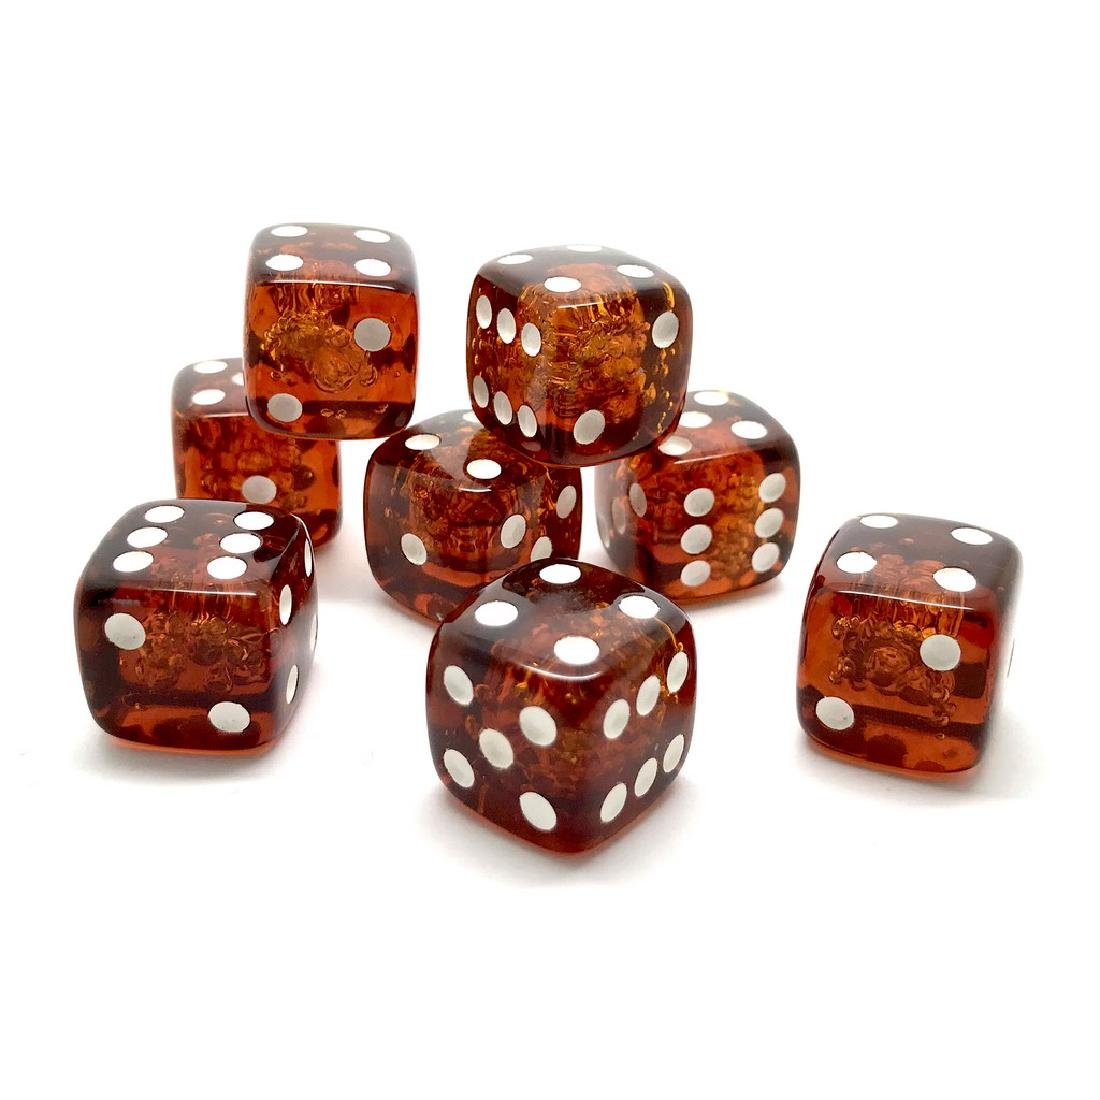 Baltic amber handcarved game dices 8pcs 17.5mm cognac